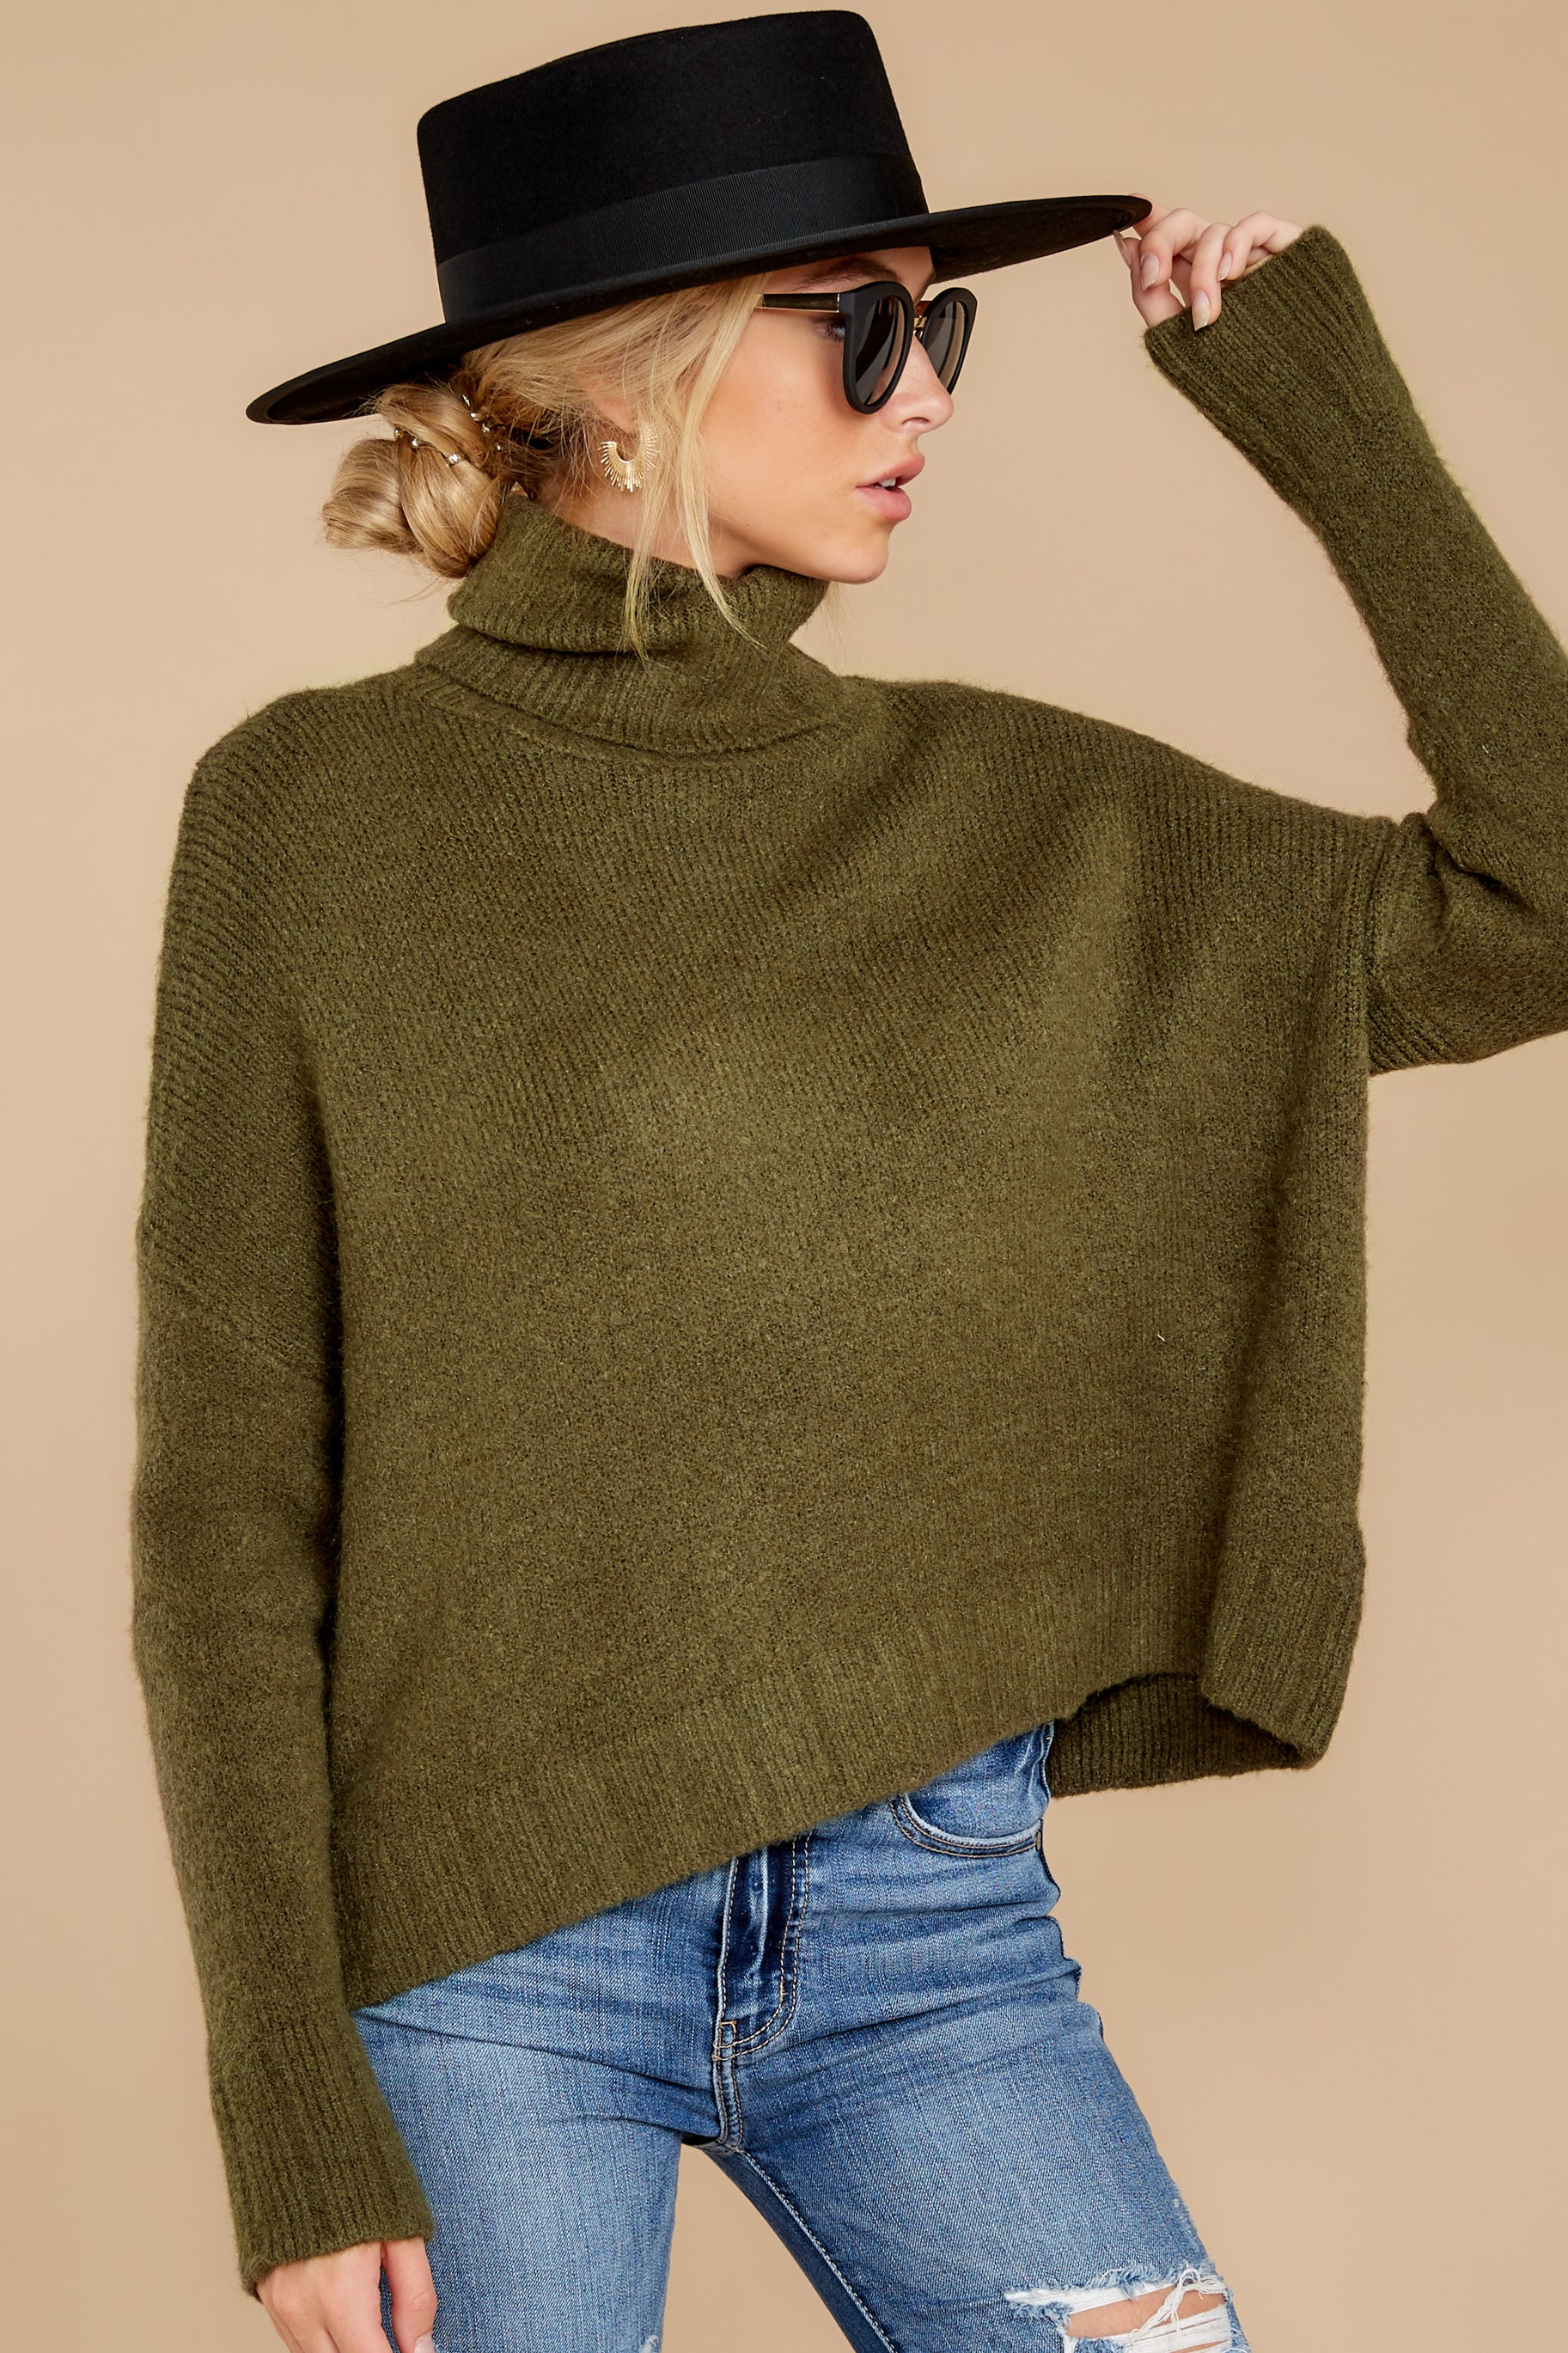 7 Say Anything Olive Green Turtleneck Sweater at reddress.com